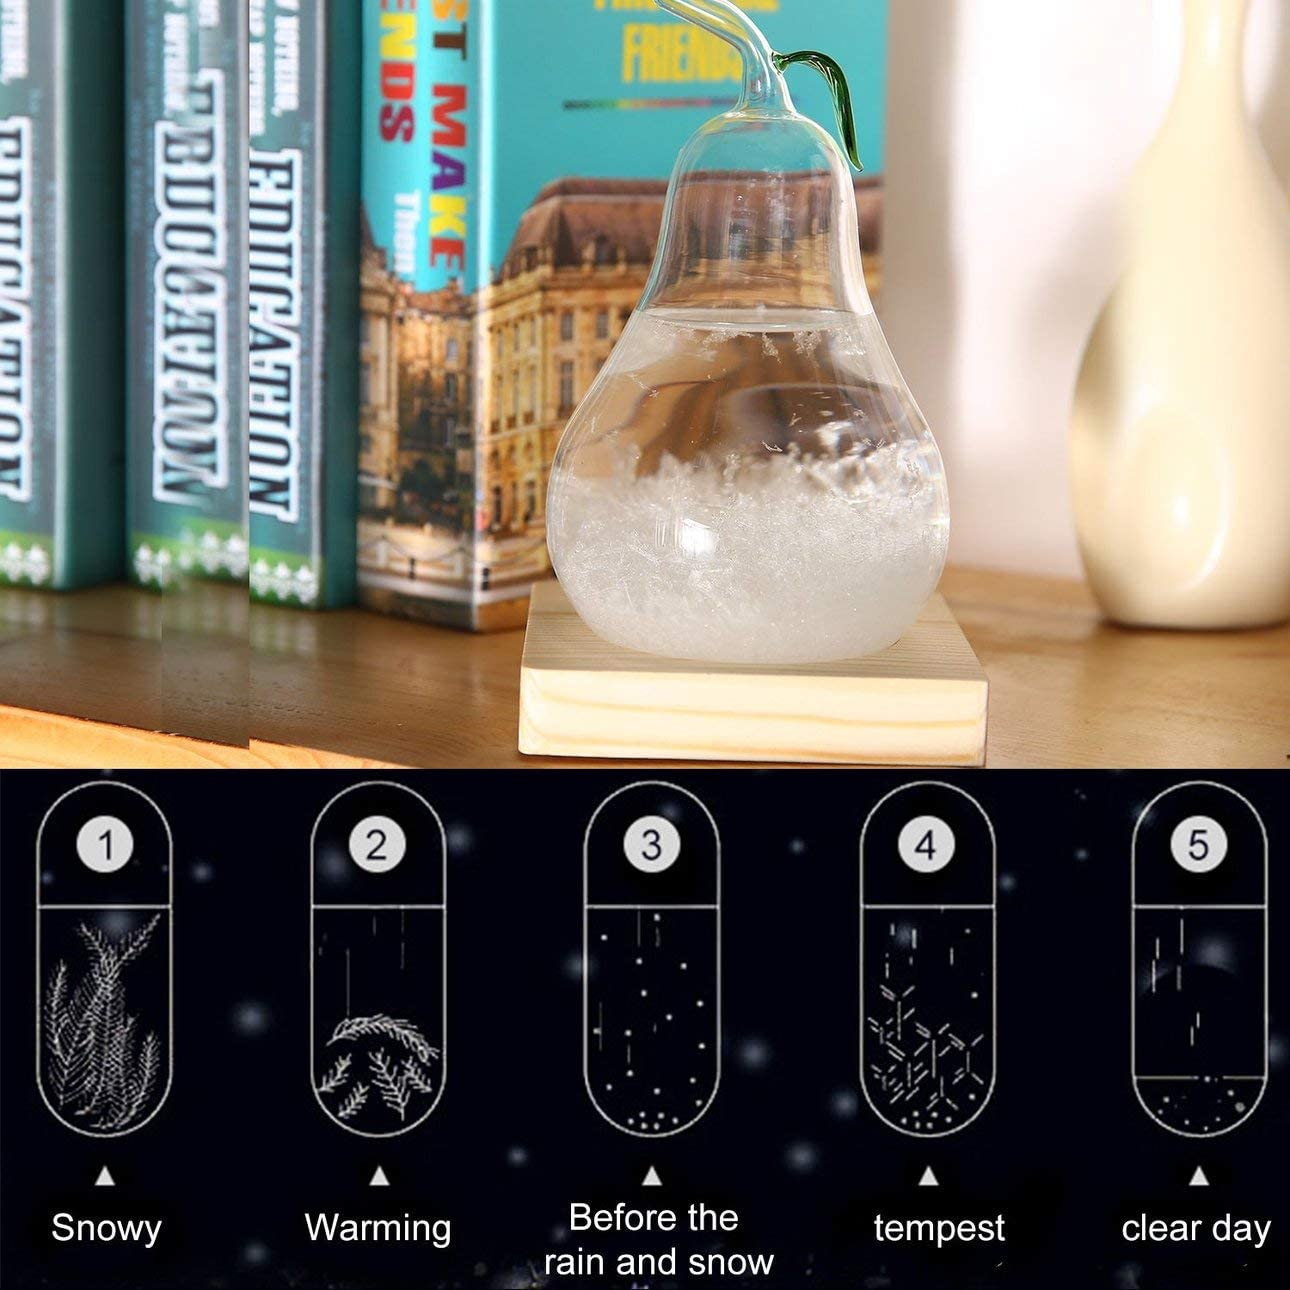 Liobaba Weather Forecast Glass Fruit Pear Shape Weather Predictor Crystal Gift Glass Crafts Tempo Drop Storm Glass Barometer